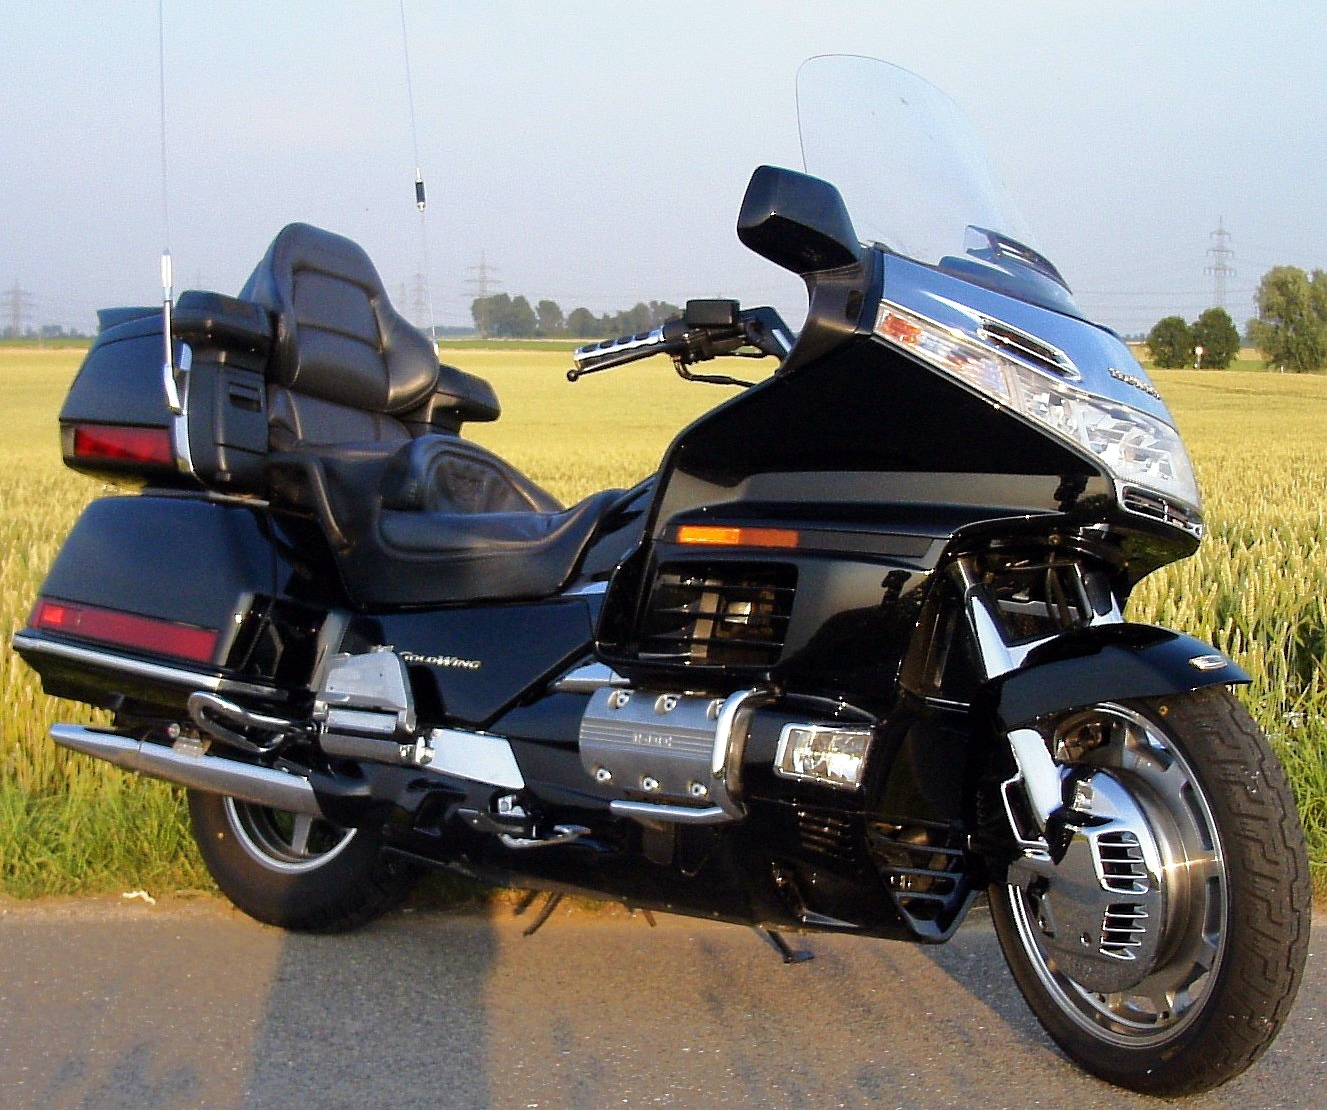 Bikes Honda Speed 1500 Cc Honda Goldwing GL SE US